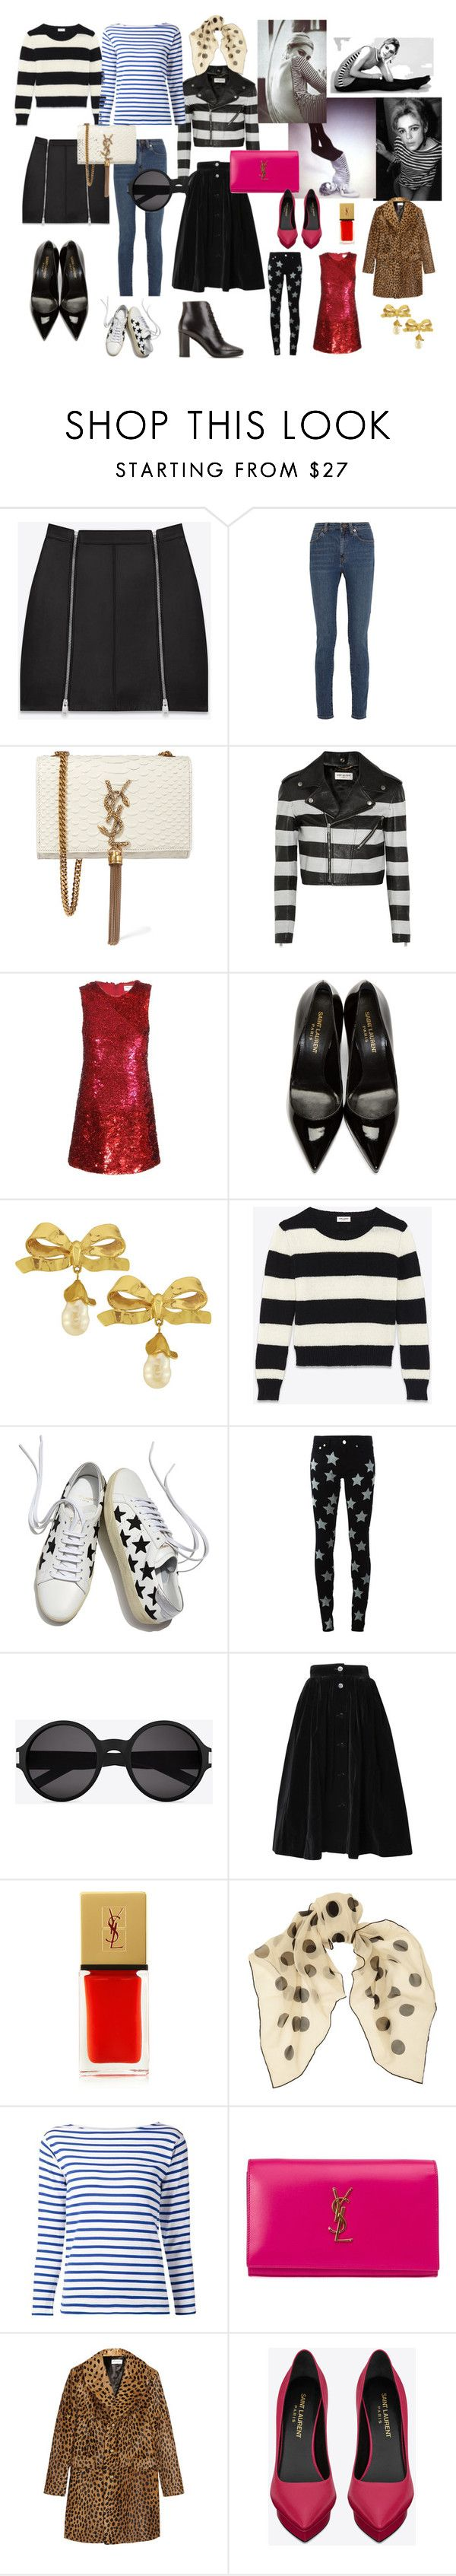 Saint Laurent - Edie Sedgwick by jenny-ragnwaldh on Polyvore featuring Yves Saint Laurent, Vintage, Sedgwick, women's clothing, women's fashion, women, female, woman, misses and juniors